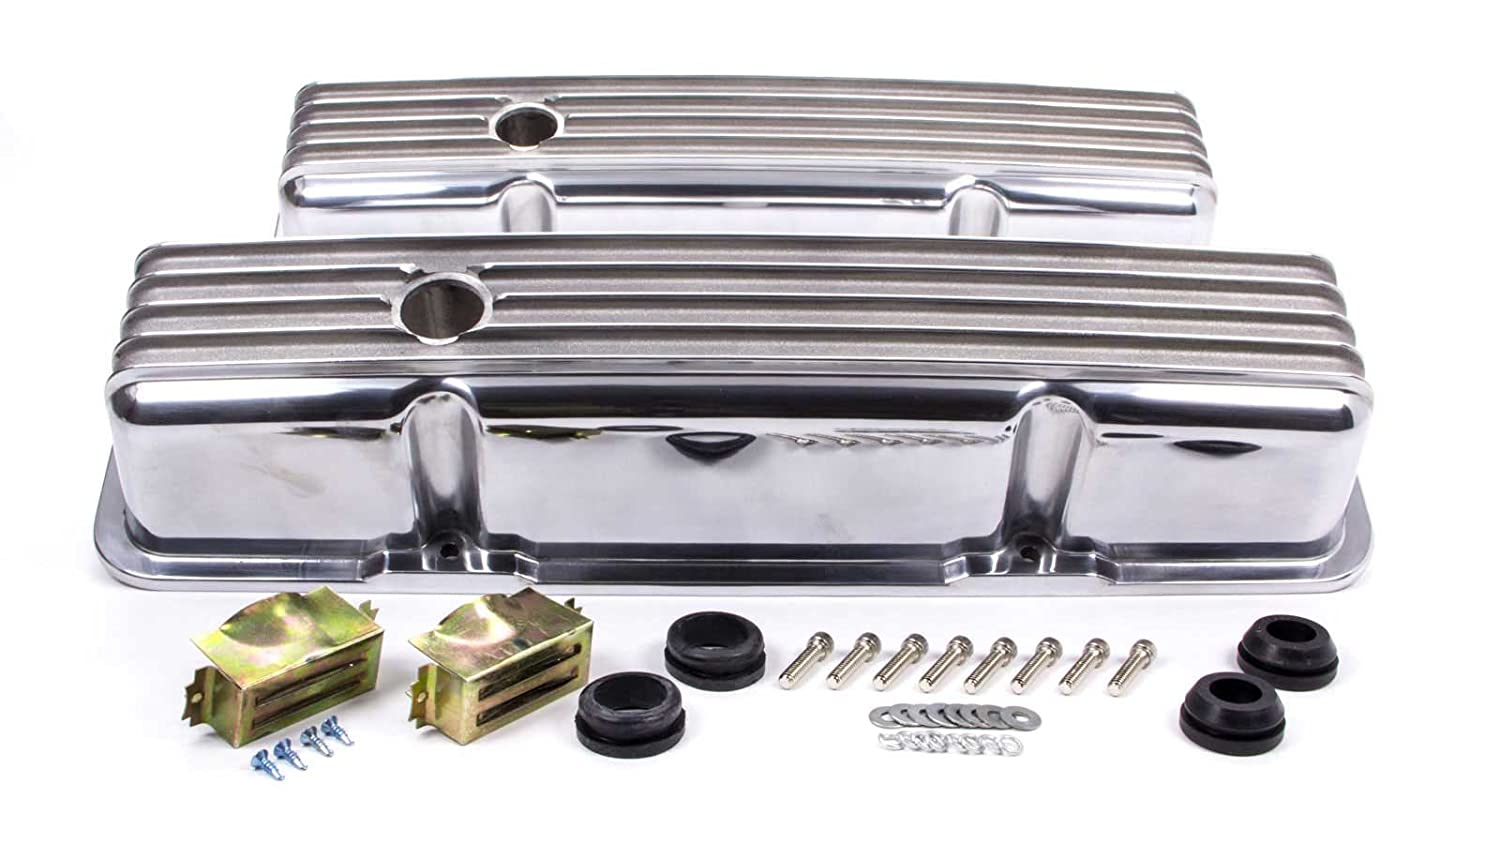 Racing Power Company R6181 Tall Finned Polished Aluminum Valve Cover for Small Block Chevy